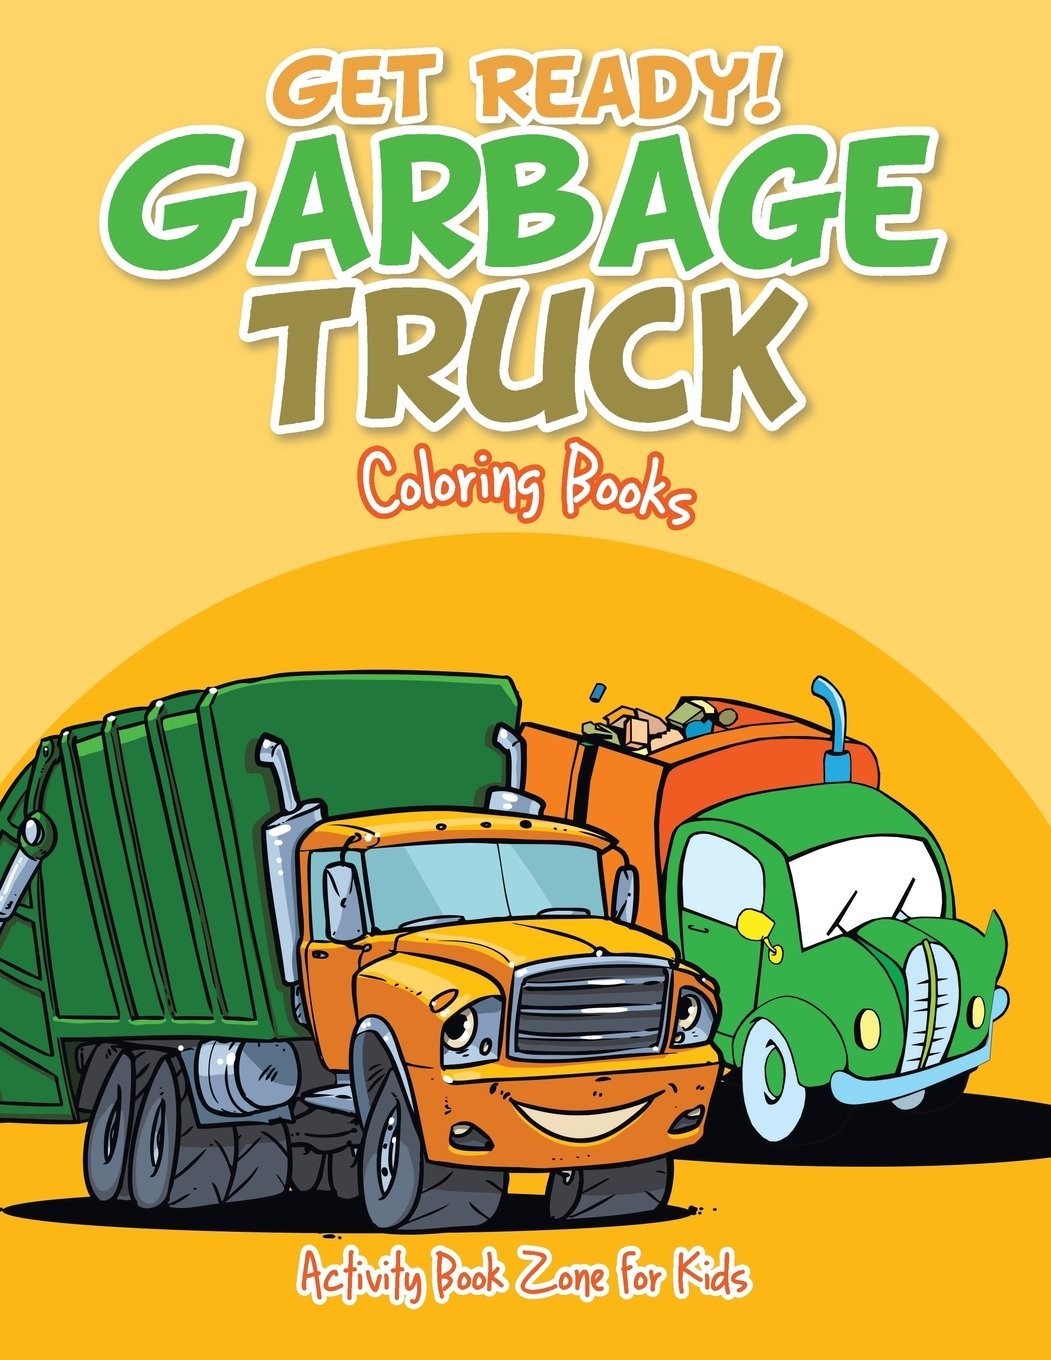 get ready garbage truck coloring books activity book zone for